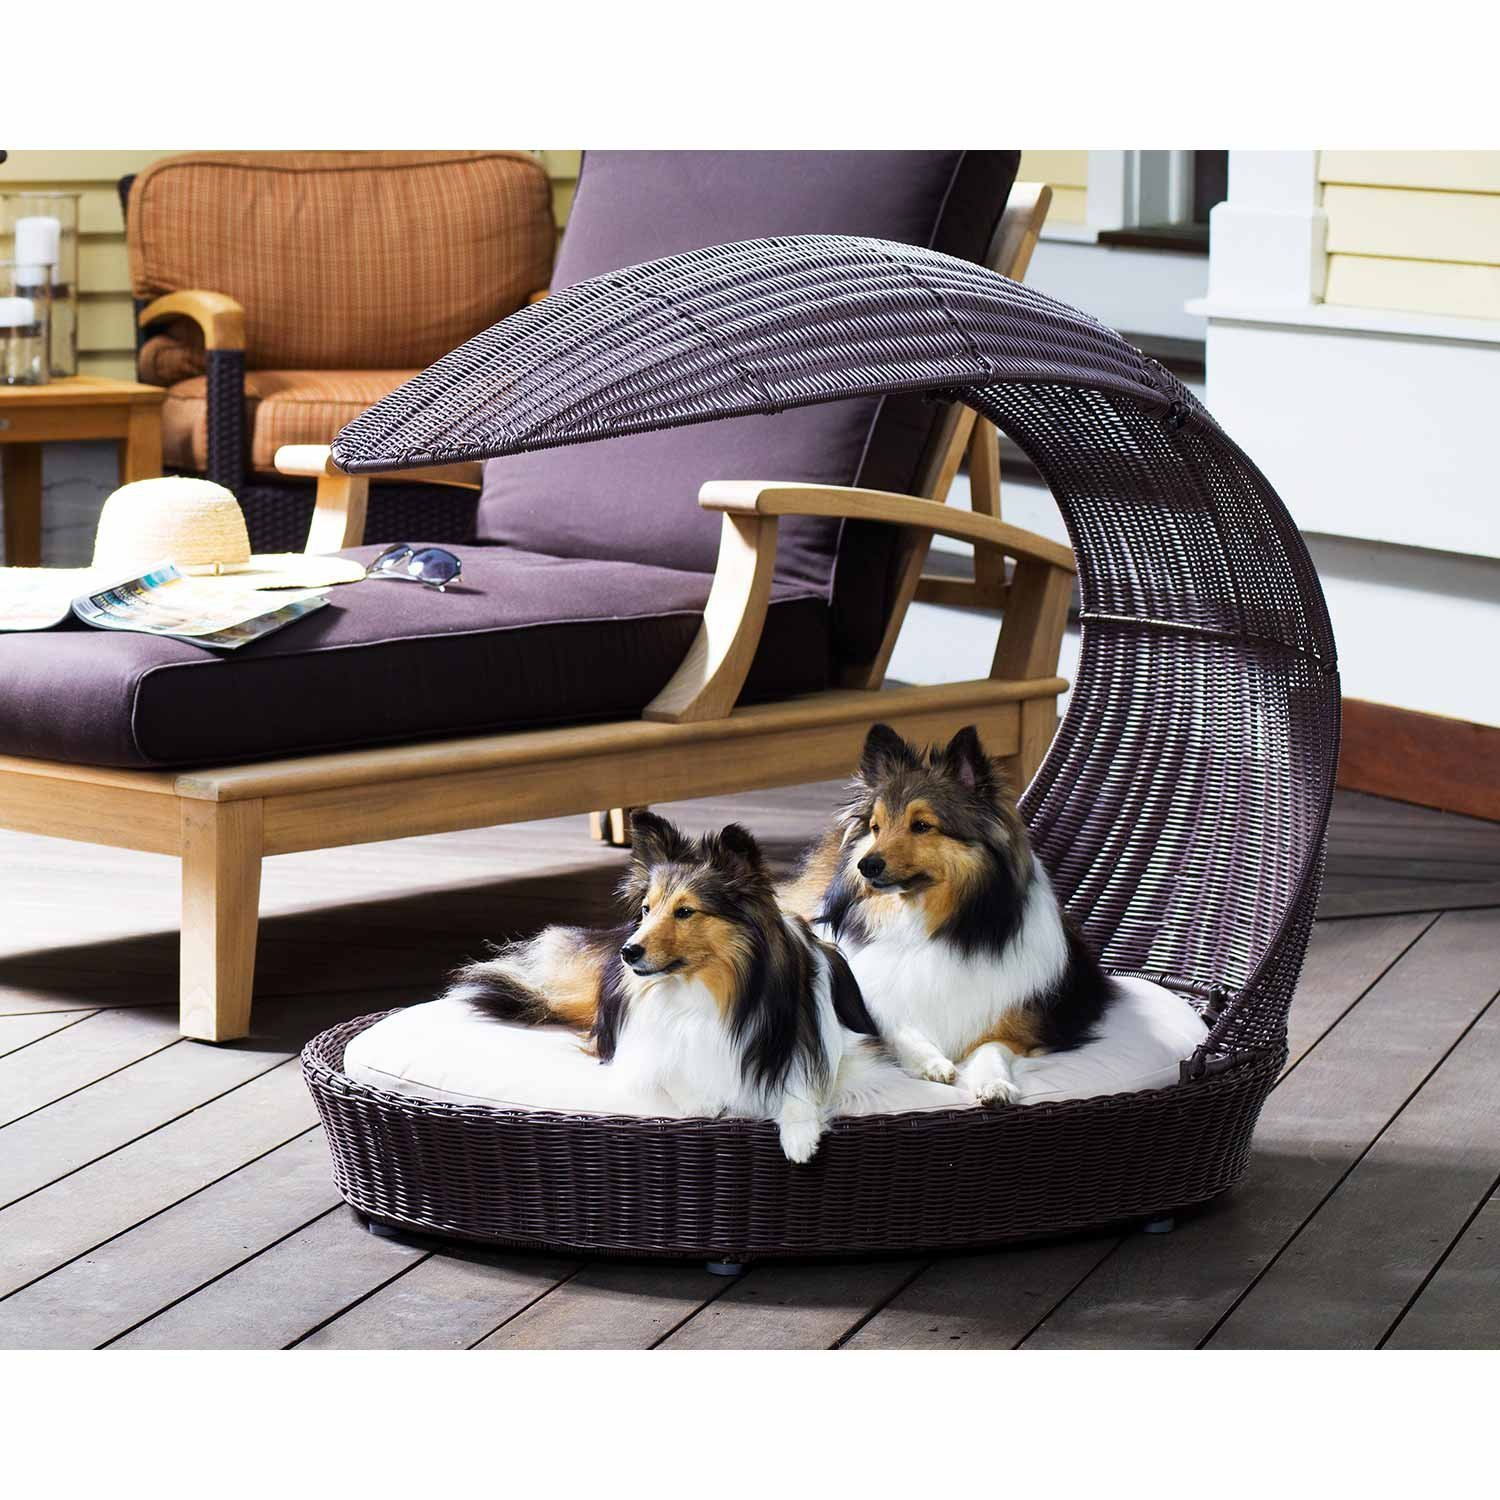 fancy dog beds furniture. Fancy Dog Beds Furniture R